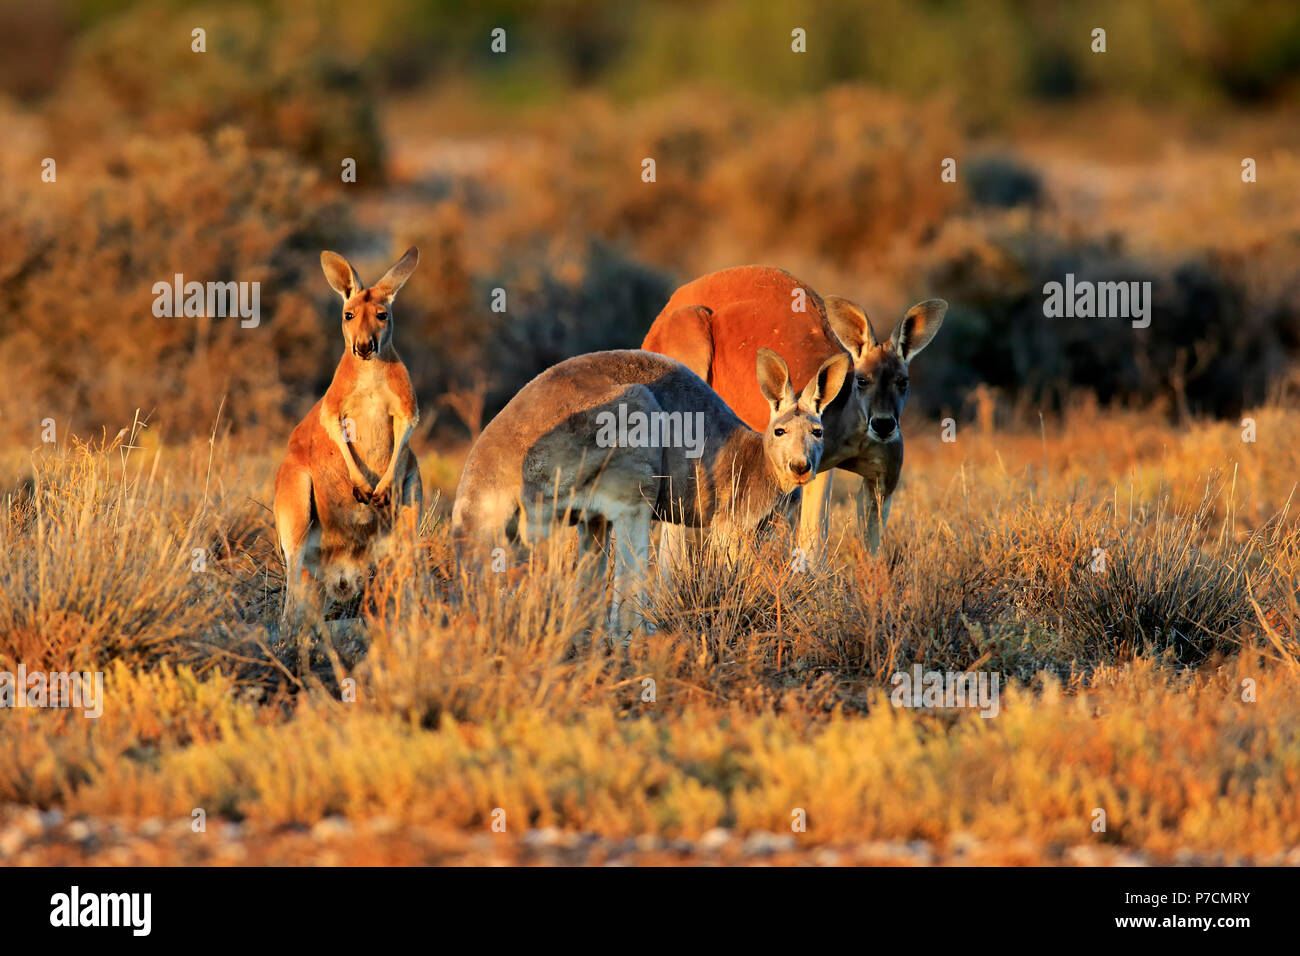 Kangourou Rouge, alerte, Sturt Nationalpark, New South Wales, Australie, (Macropus rufus) Photo Stock